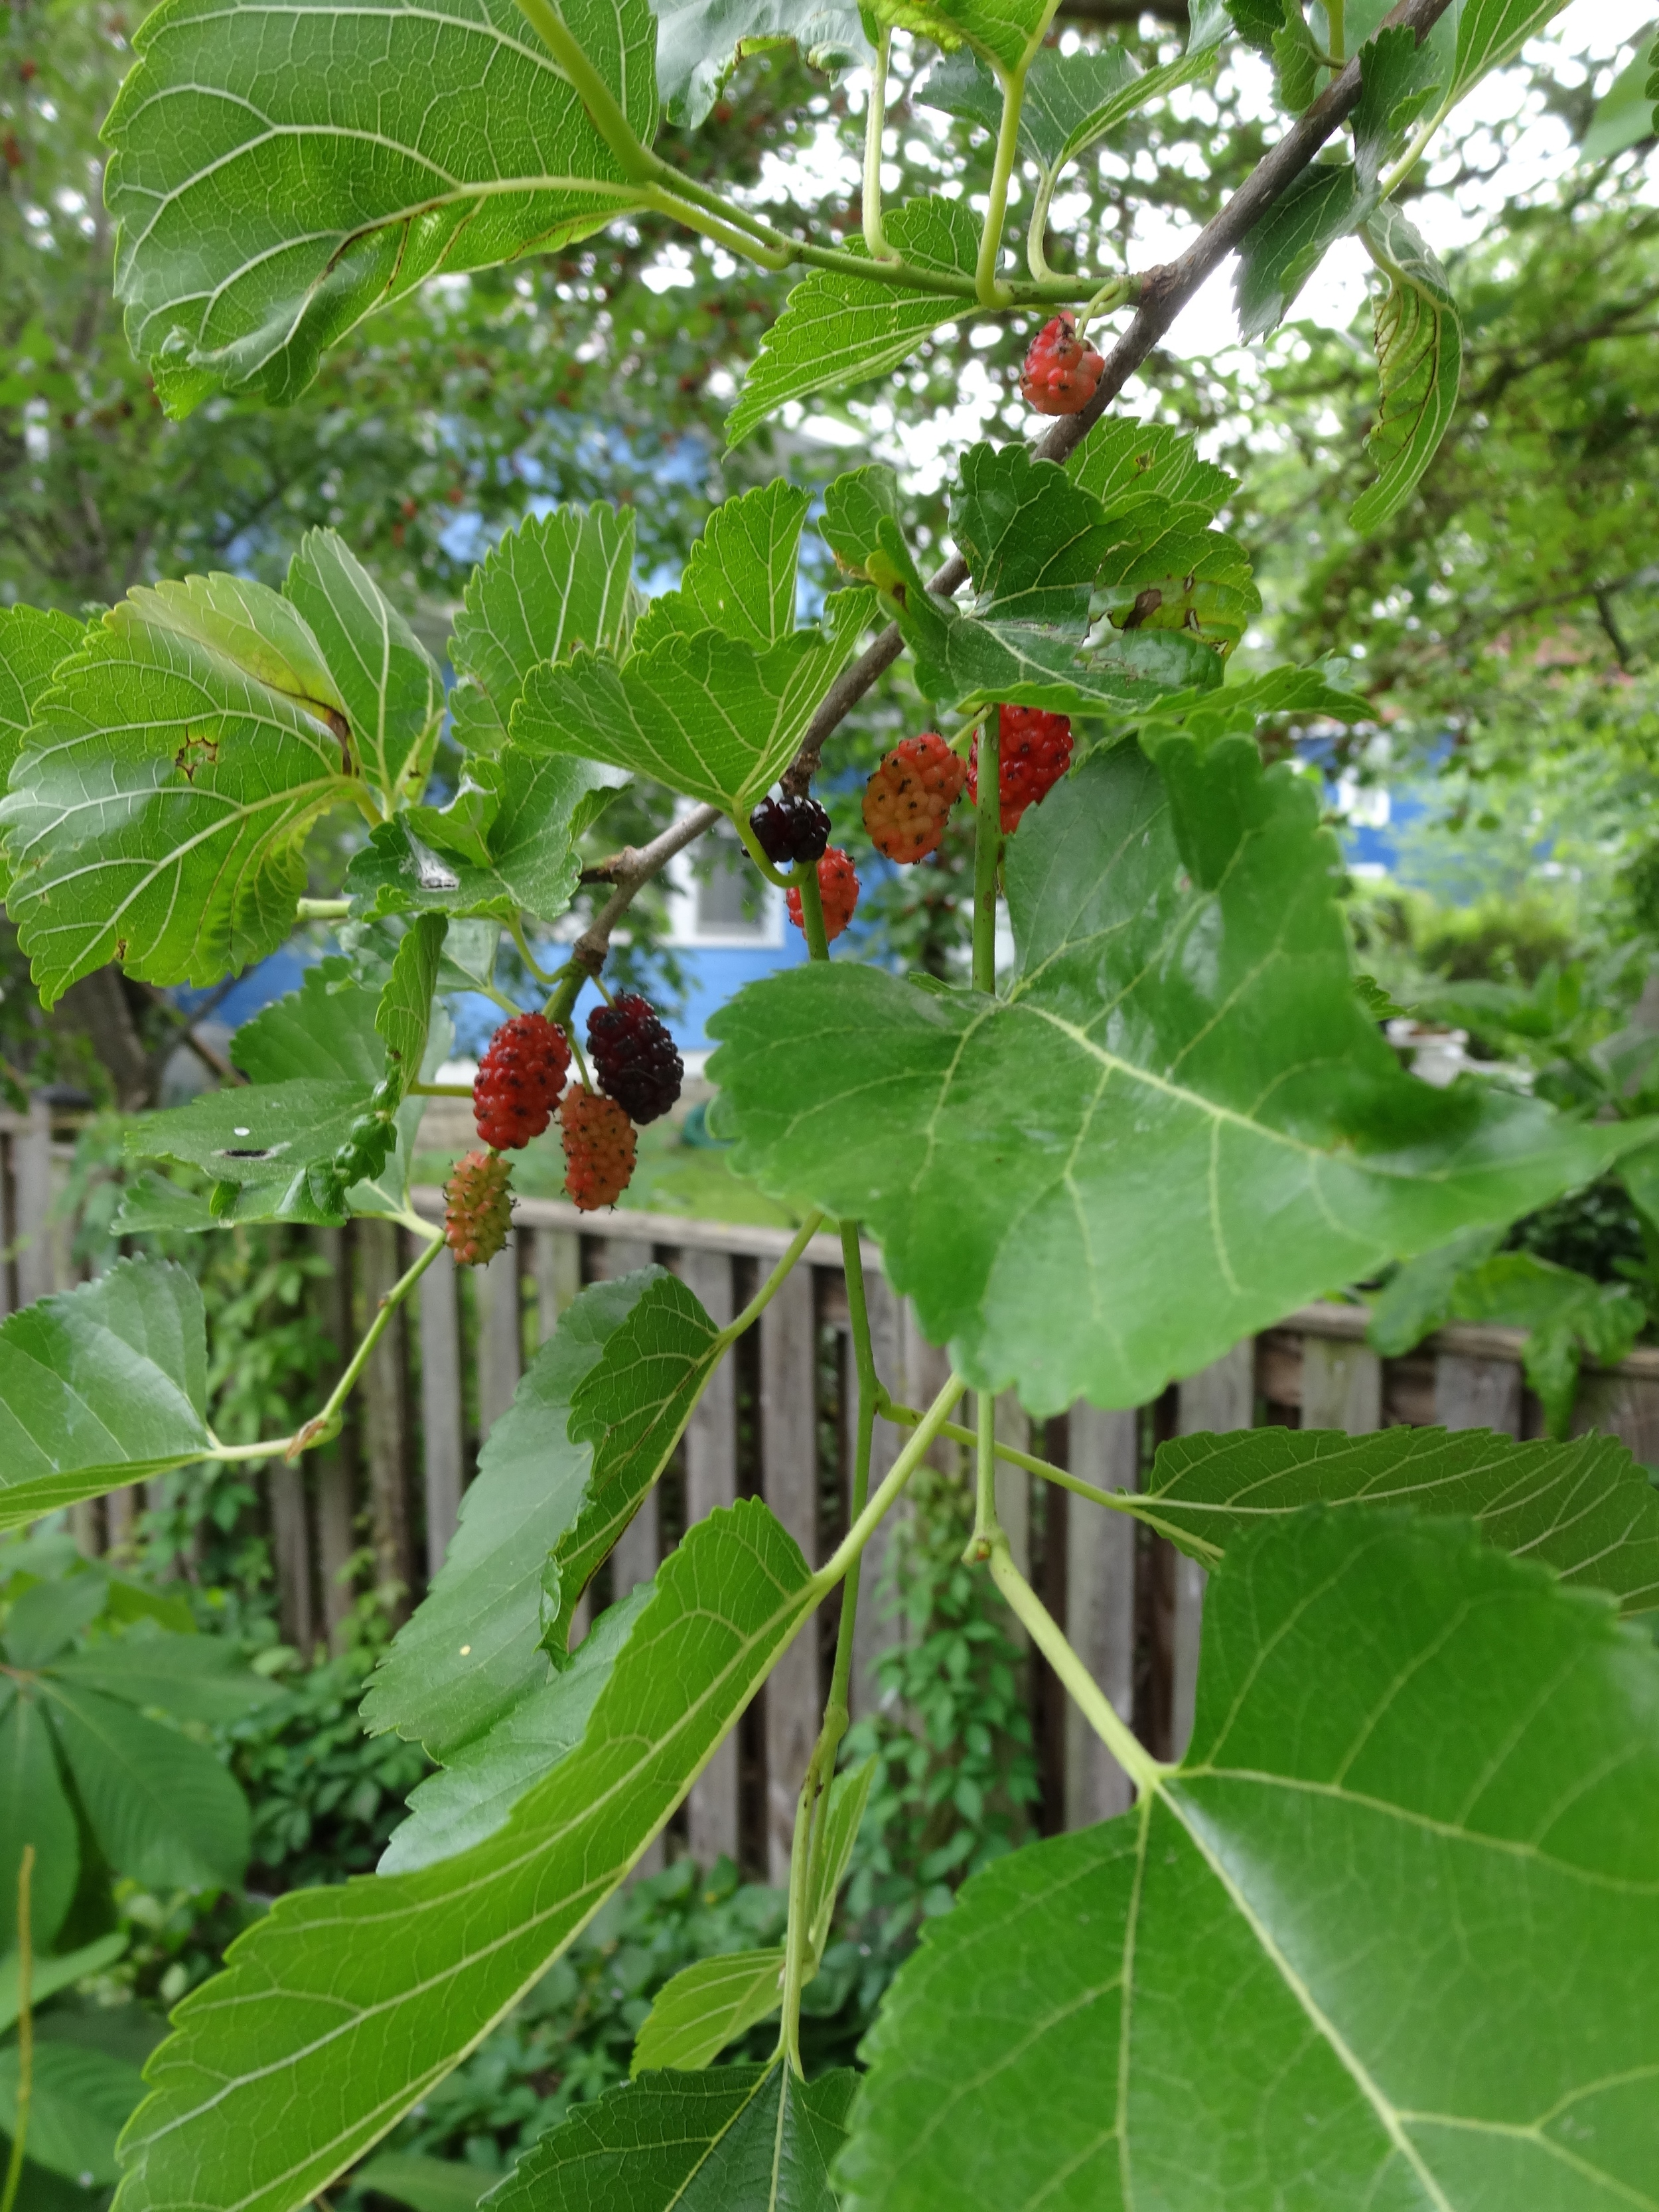 I would gladly help the animals eat the mulberries if I could get to them.